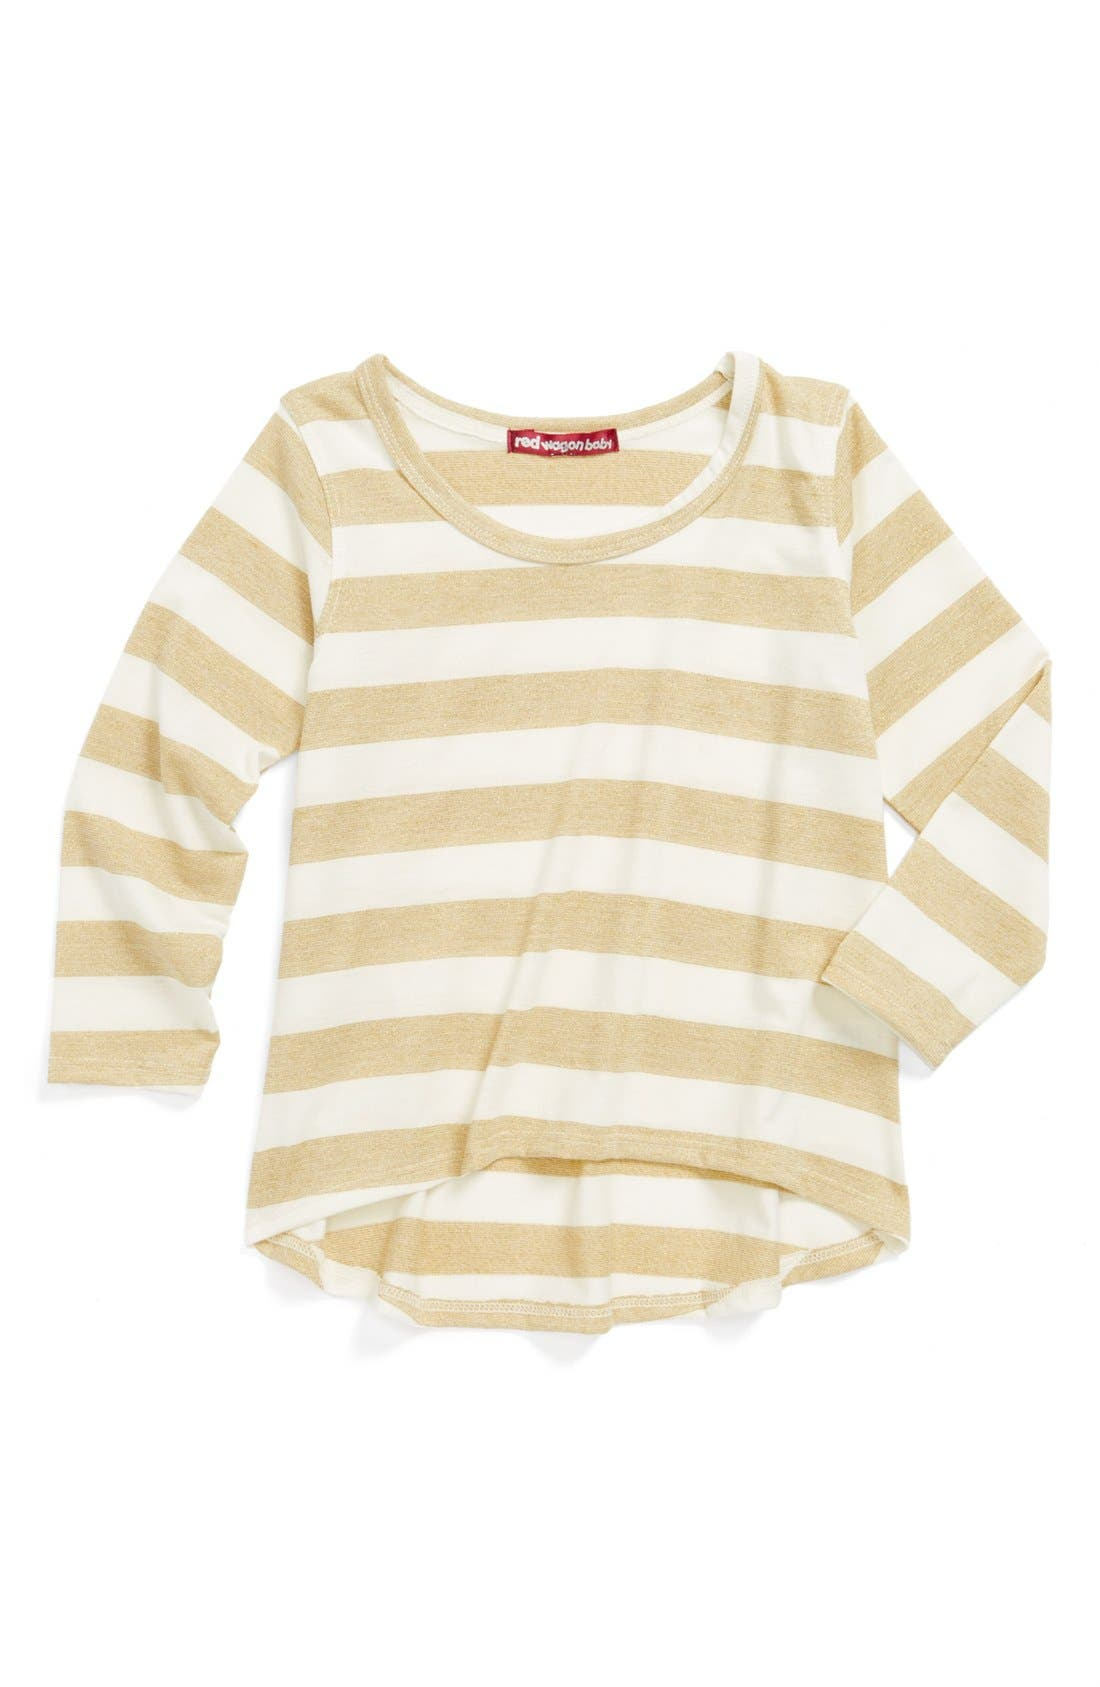 Alternate Image 1 Selected - Red Wagon Baby Stripe Tunic (Baby Girls)